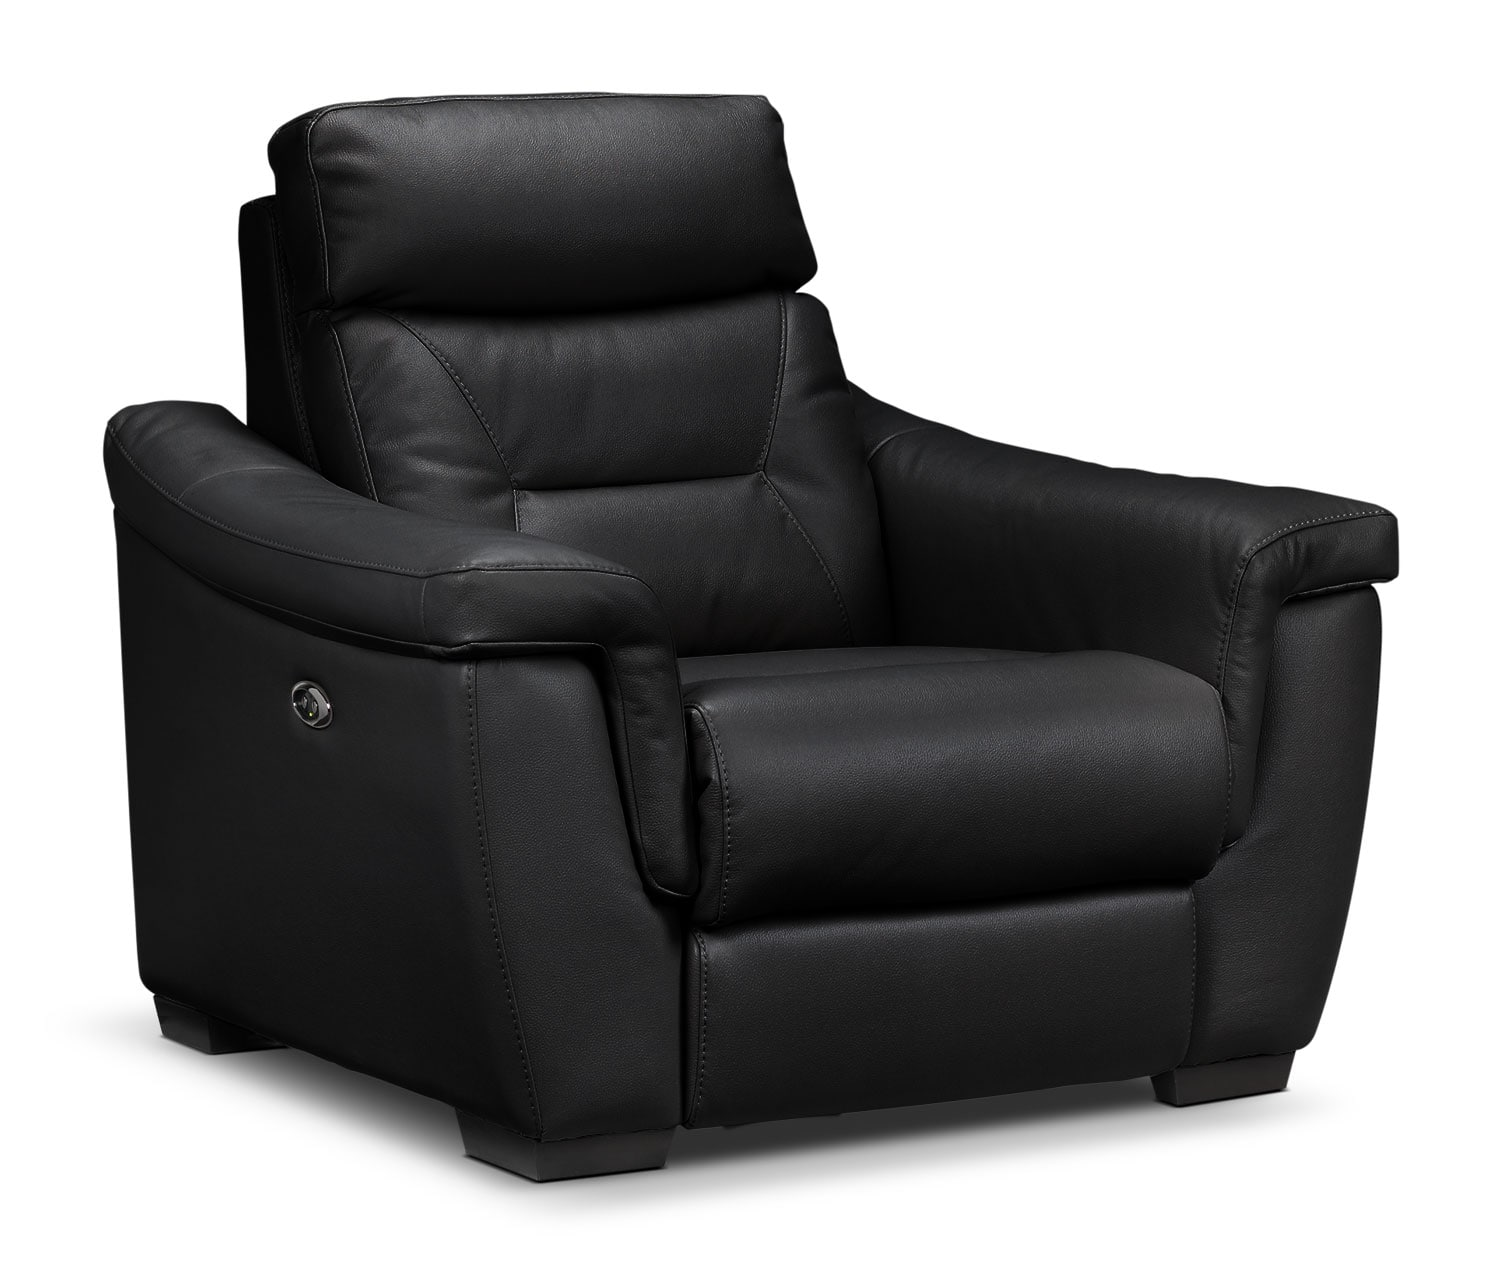 Ralston Power Recliner - Black